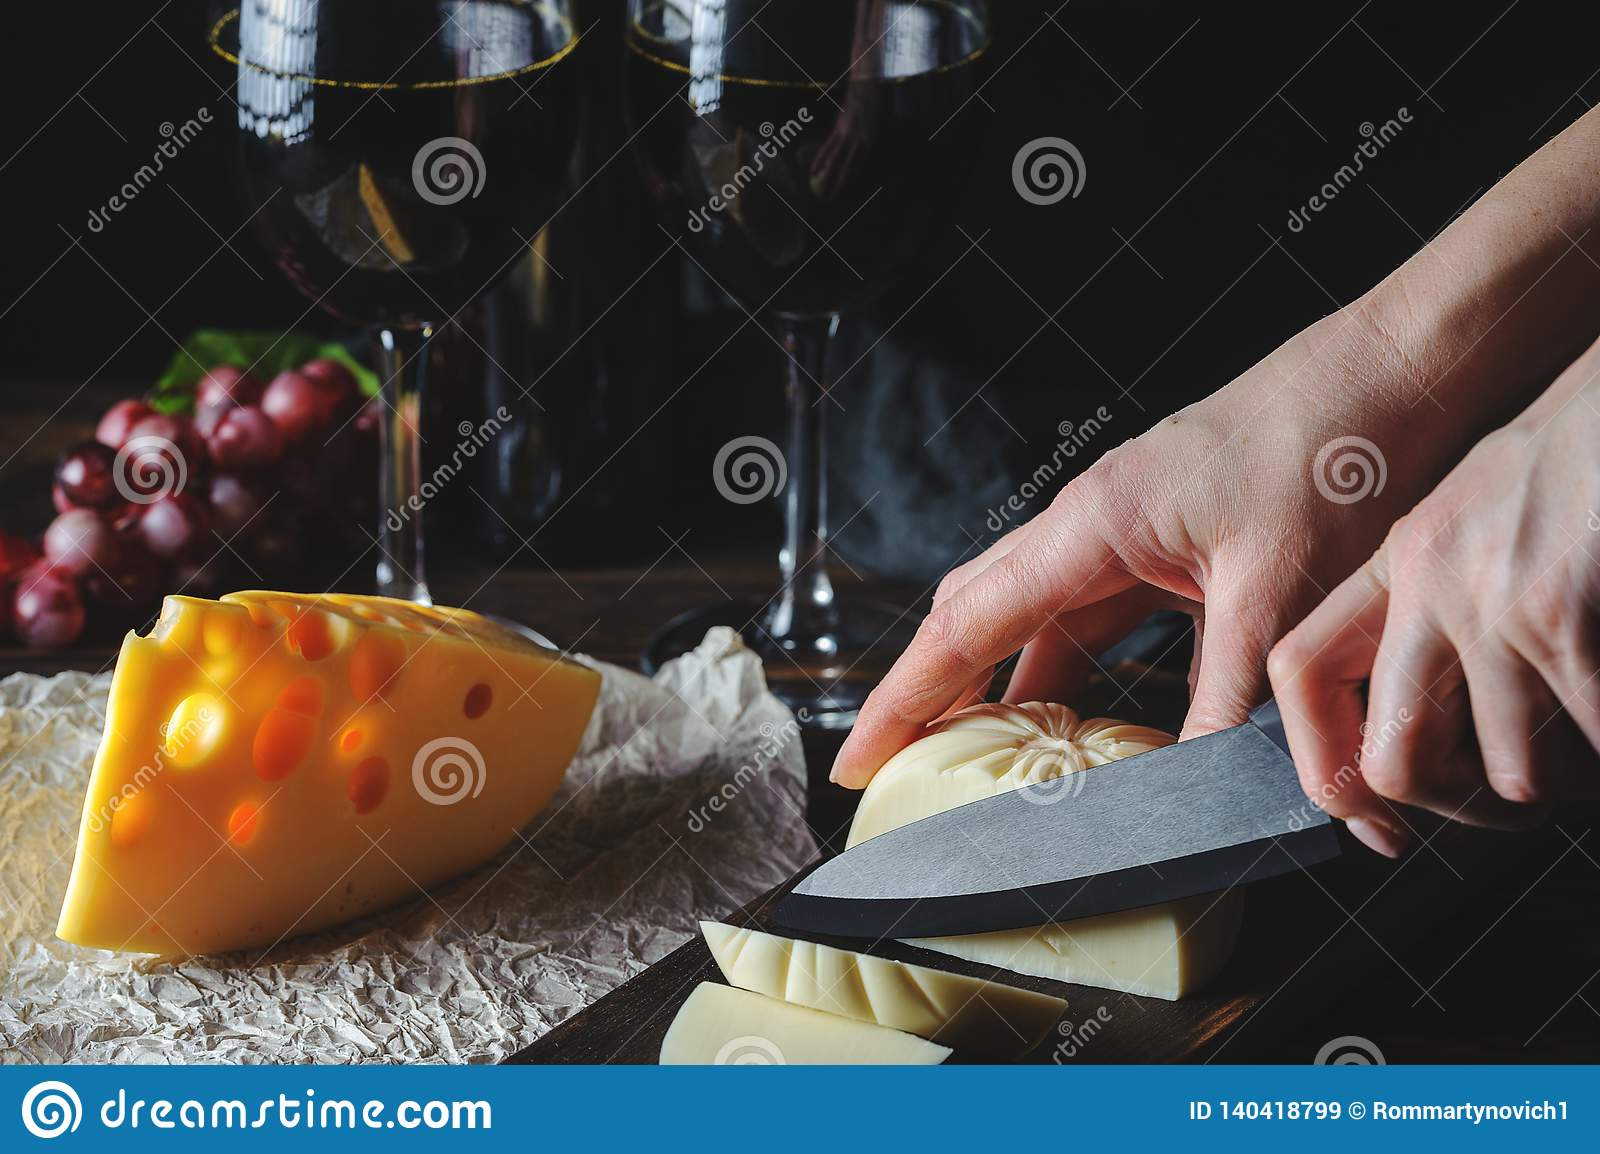 Hands cut the cheese to wine